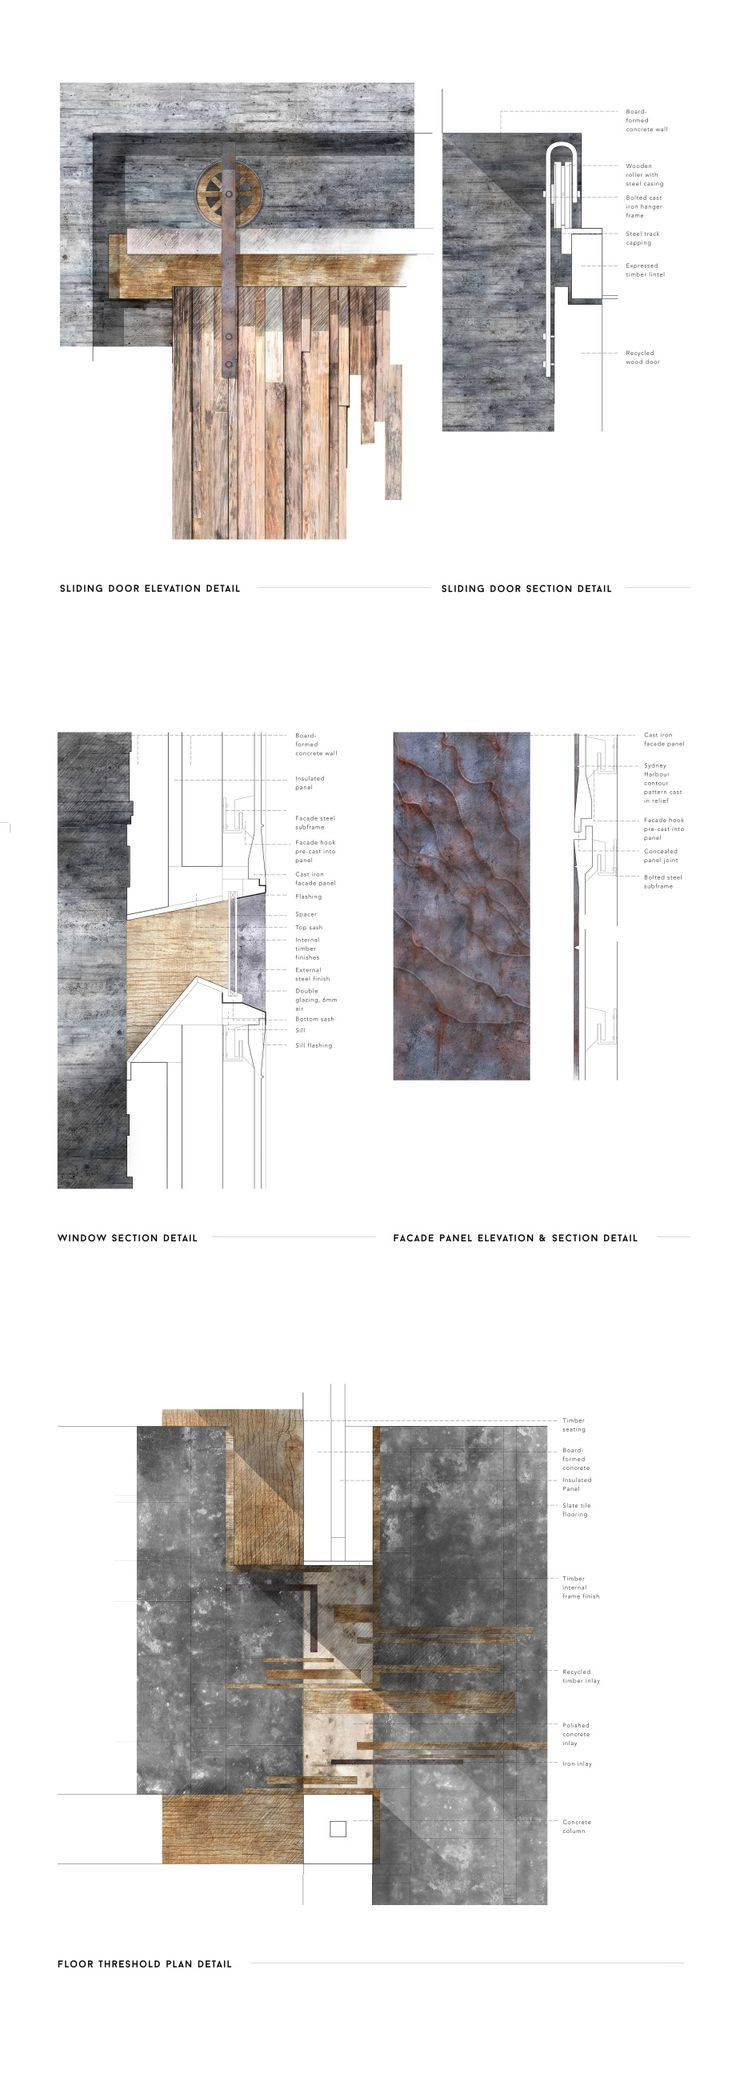 details // Alex Kindlen Final Studio Project #architecture #presentation #drawing #detail